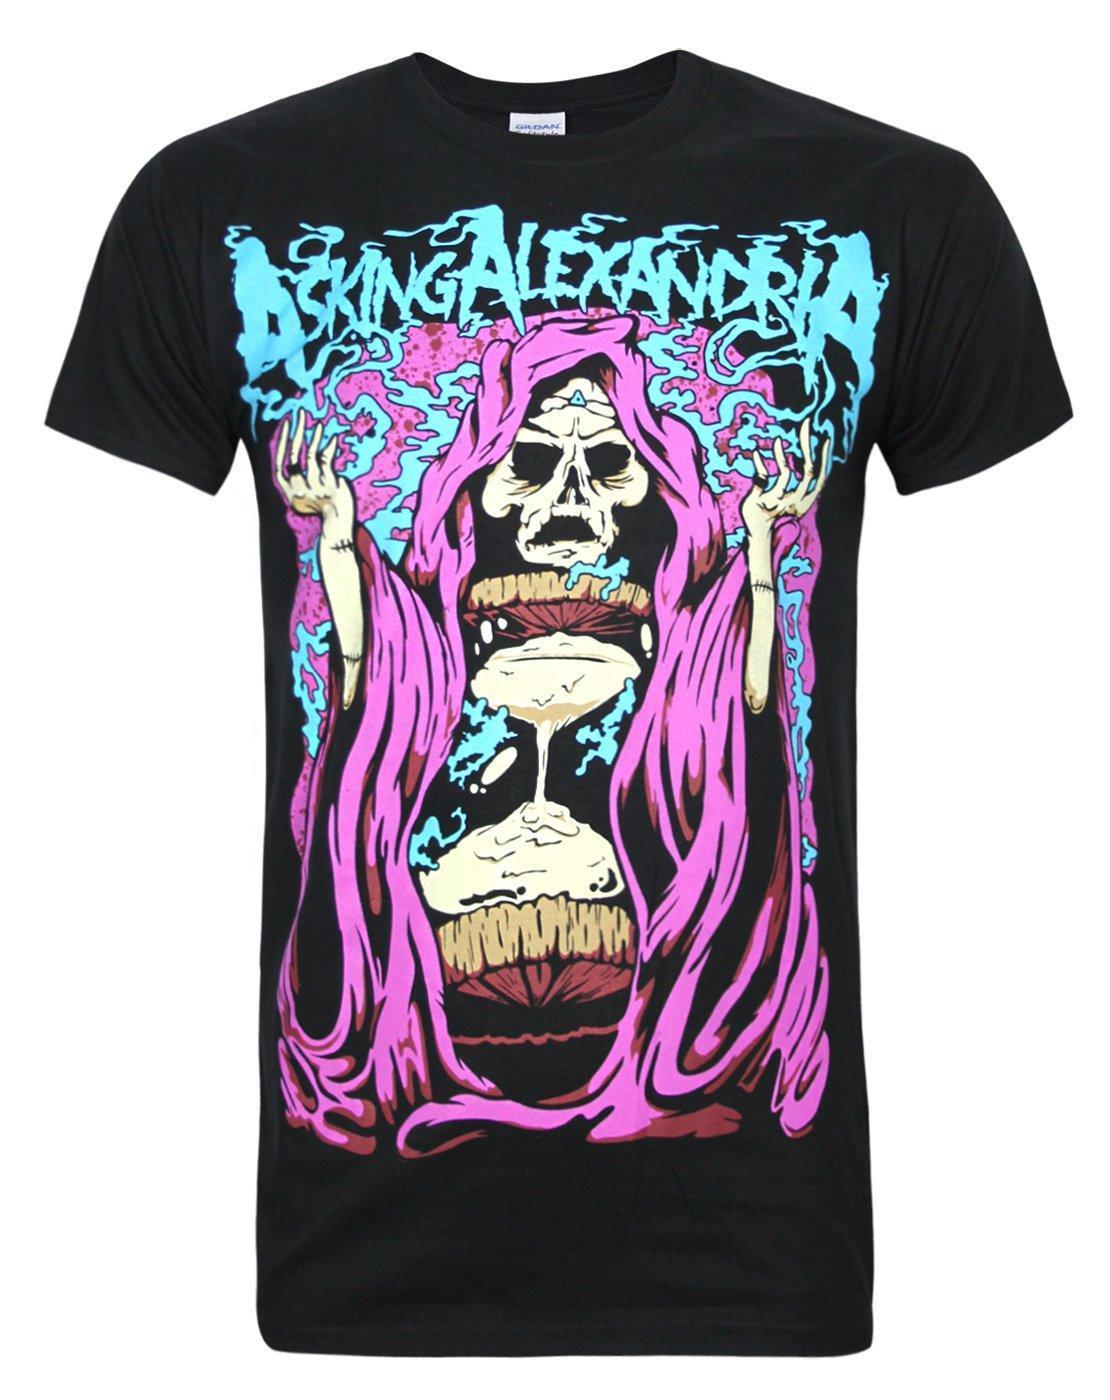 Printed Asking Alexandria Ghoul Men's T-Shirt Tops Graphic Round Collar T-Shirts 100% Cotton Hip Hop